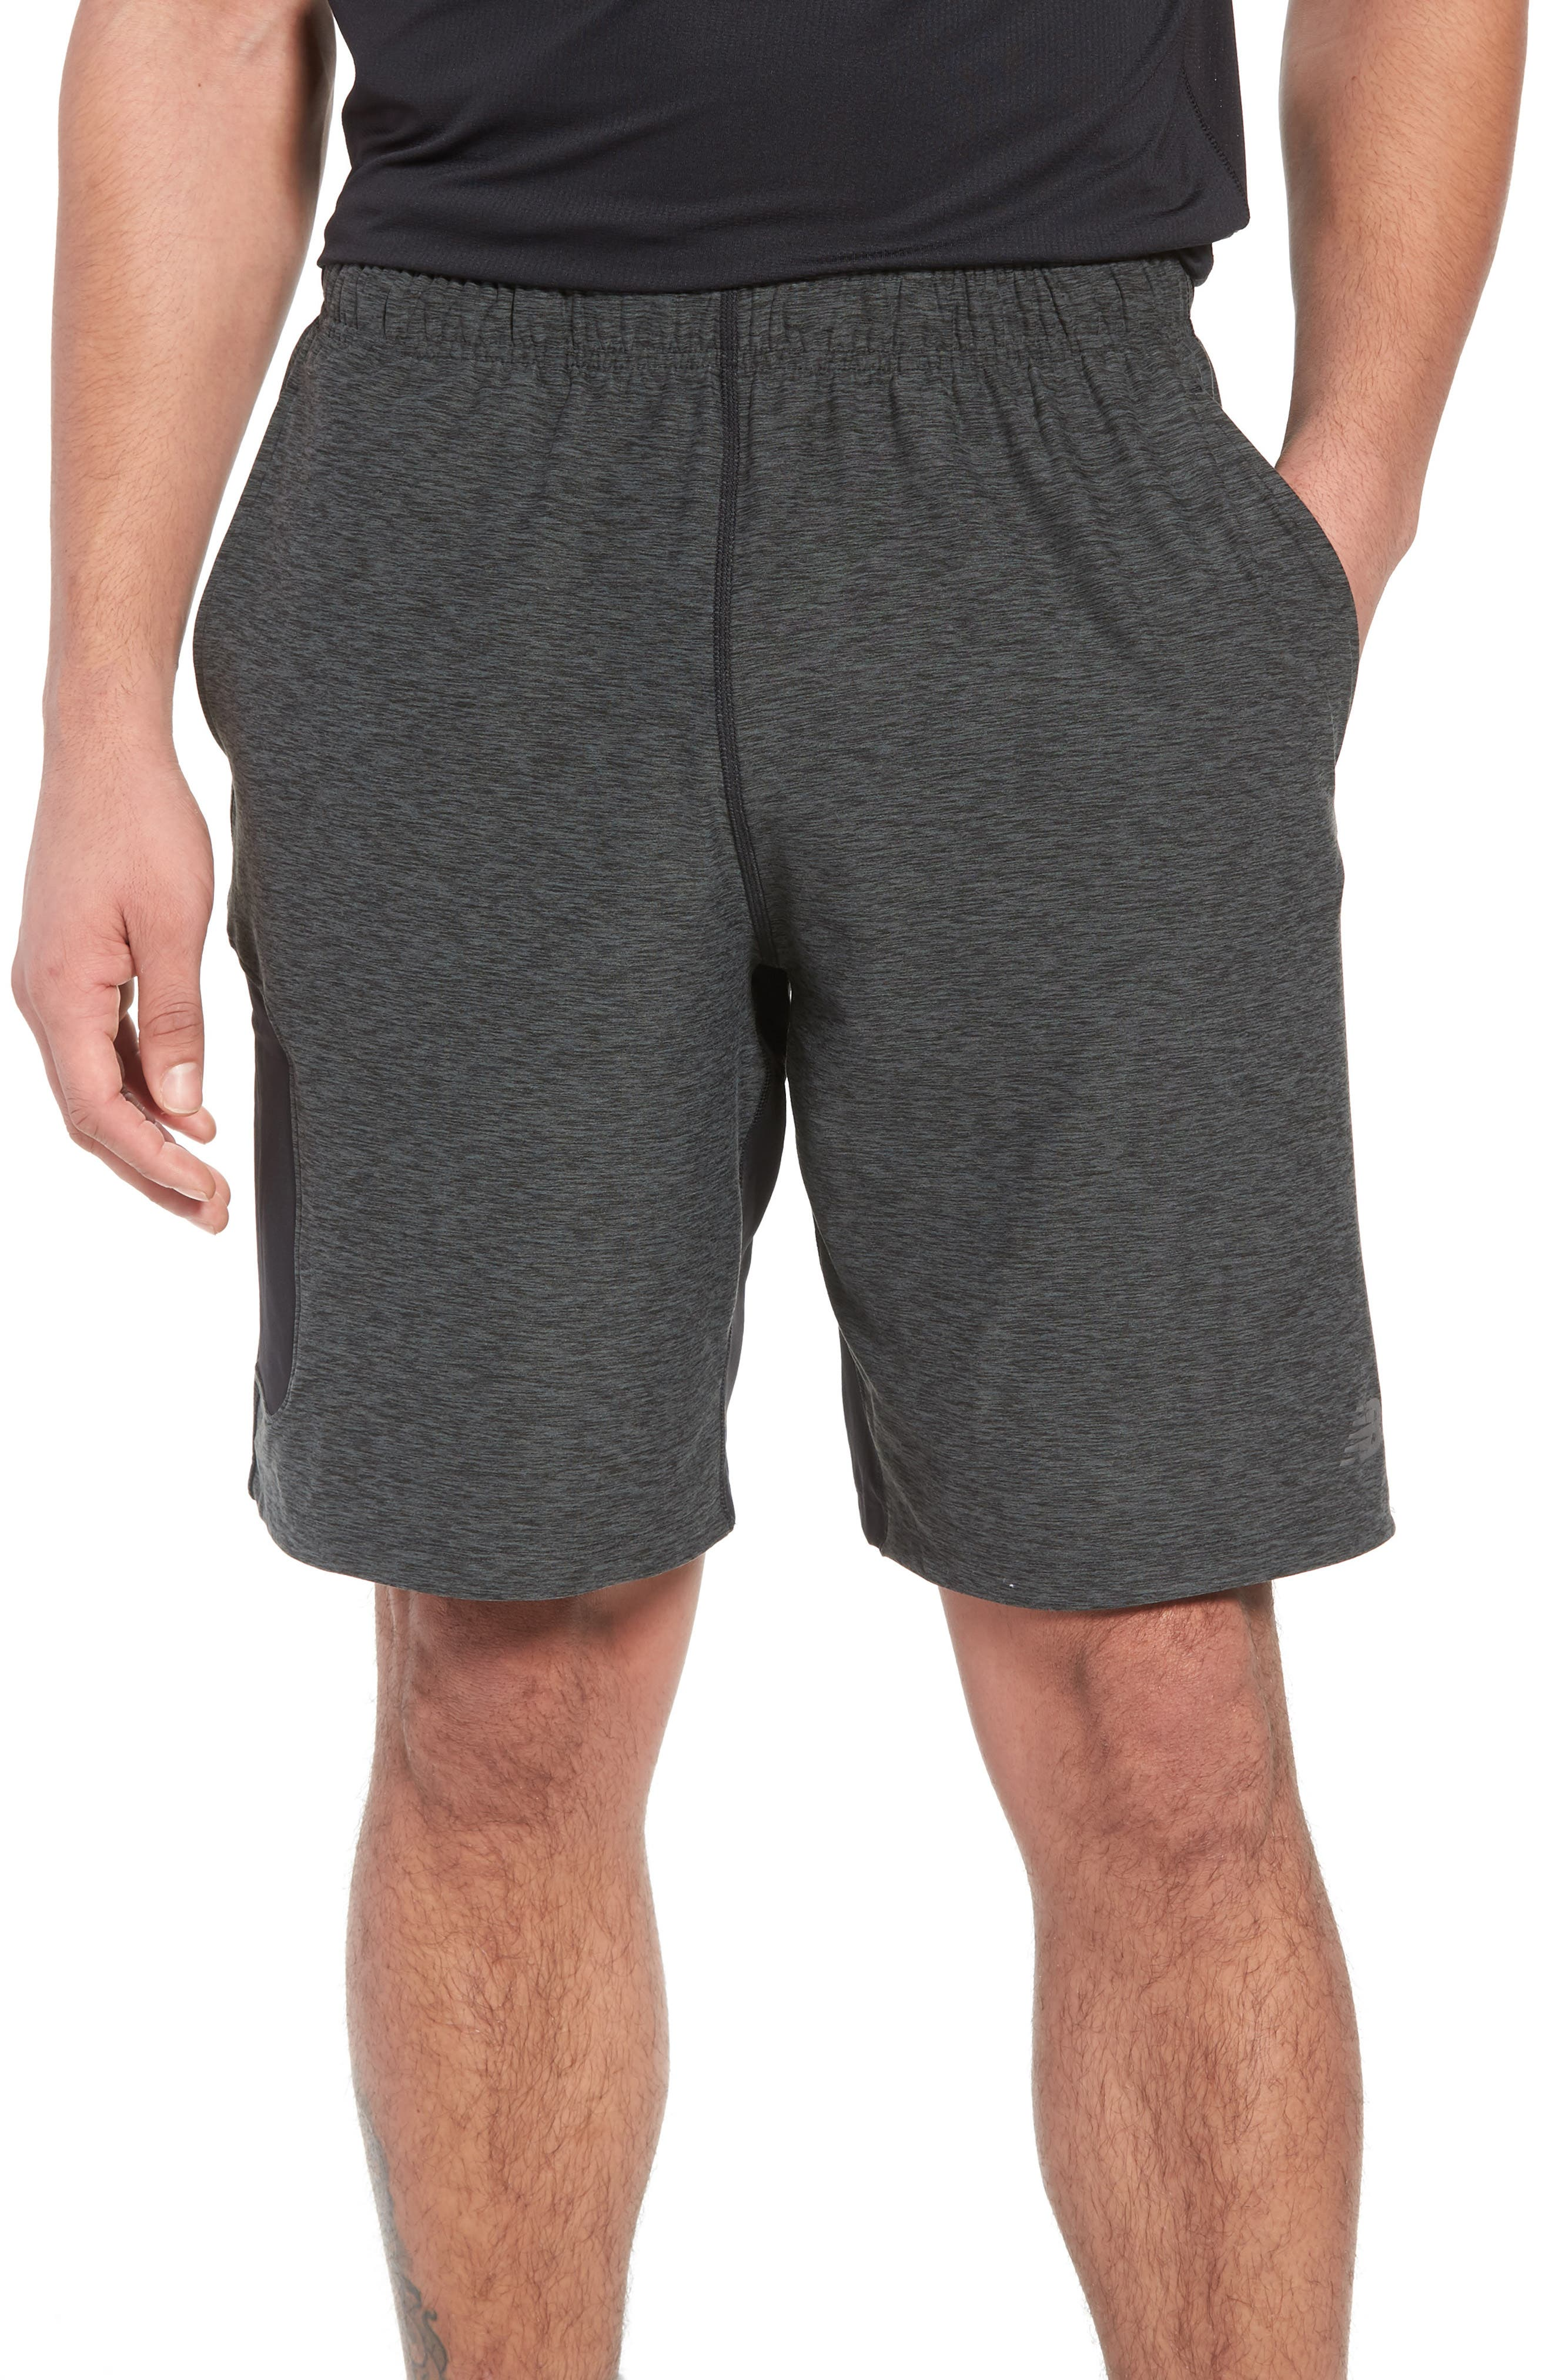 Anticipate Shorts,                         Main,                         color, HEATHER CHARCOAL